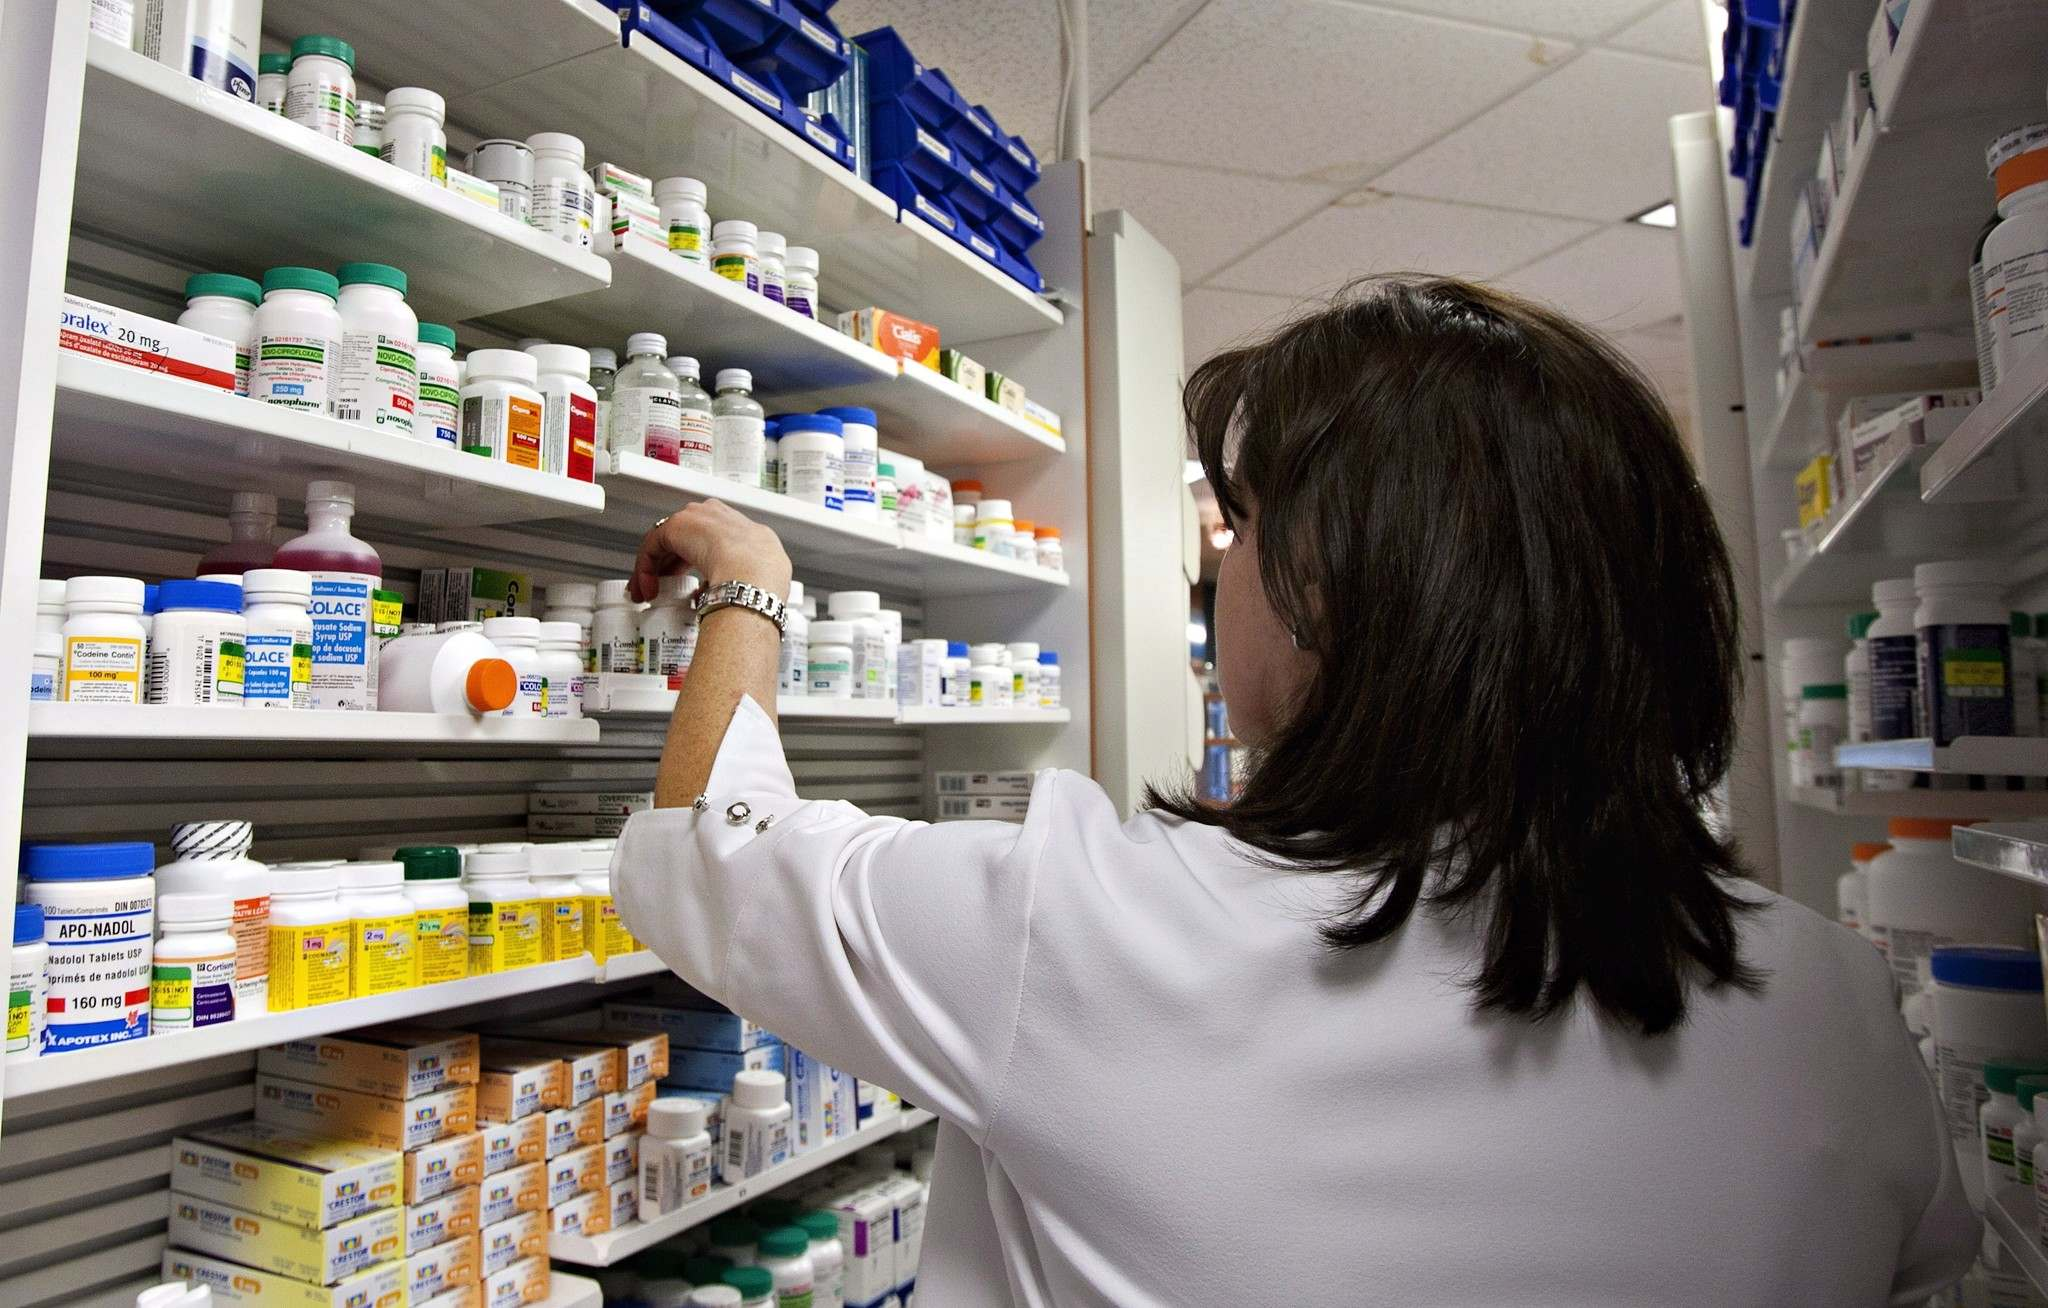 Effective Monday, Manitobans who have prescriptions for long-term medications will be able to obtain up to a three-month supply, as per their prescriber's directions, if the drug is not affected by shortages. (Jacques Boissinot / Canadian Press files)</p></p>